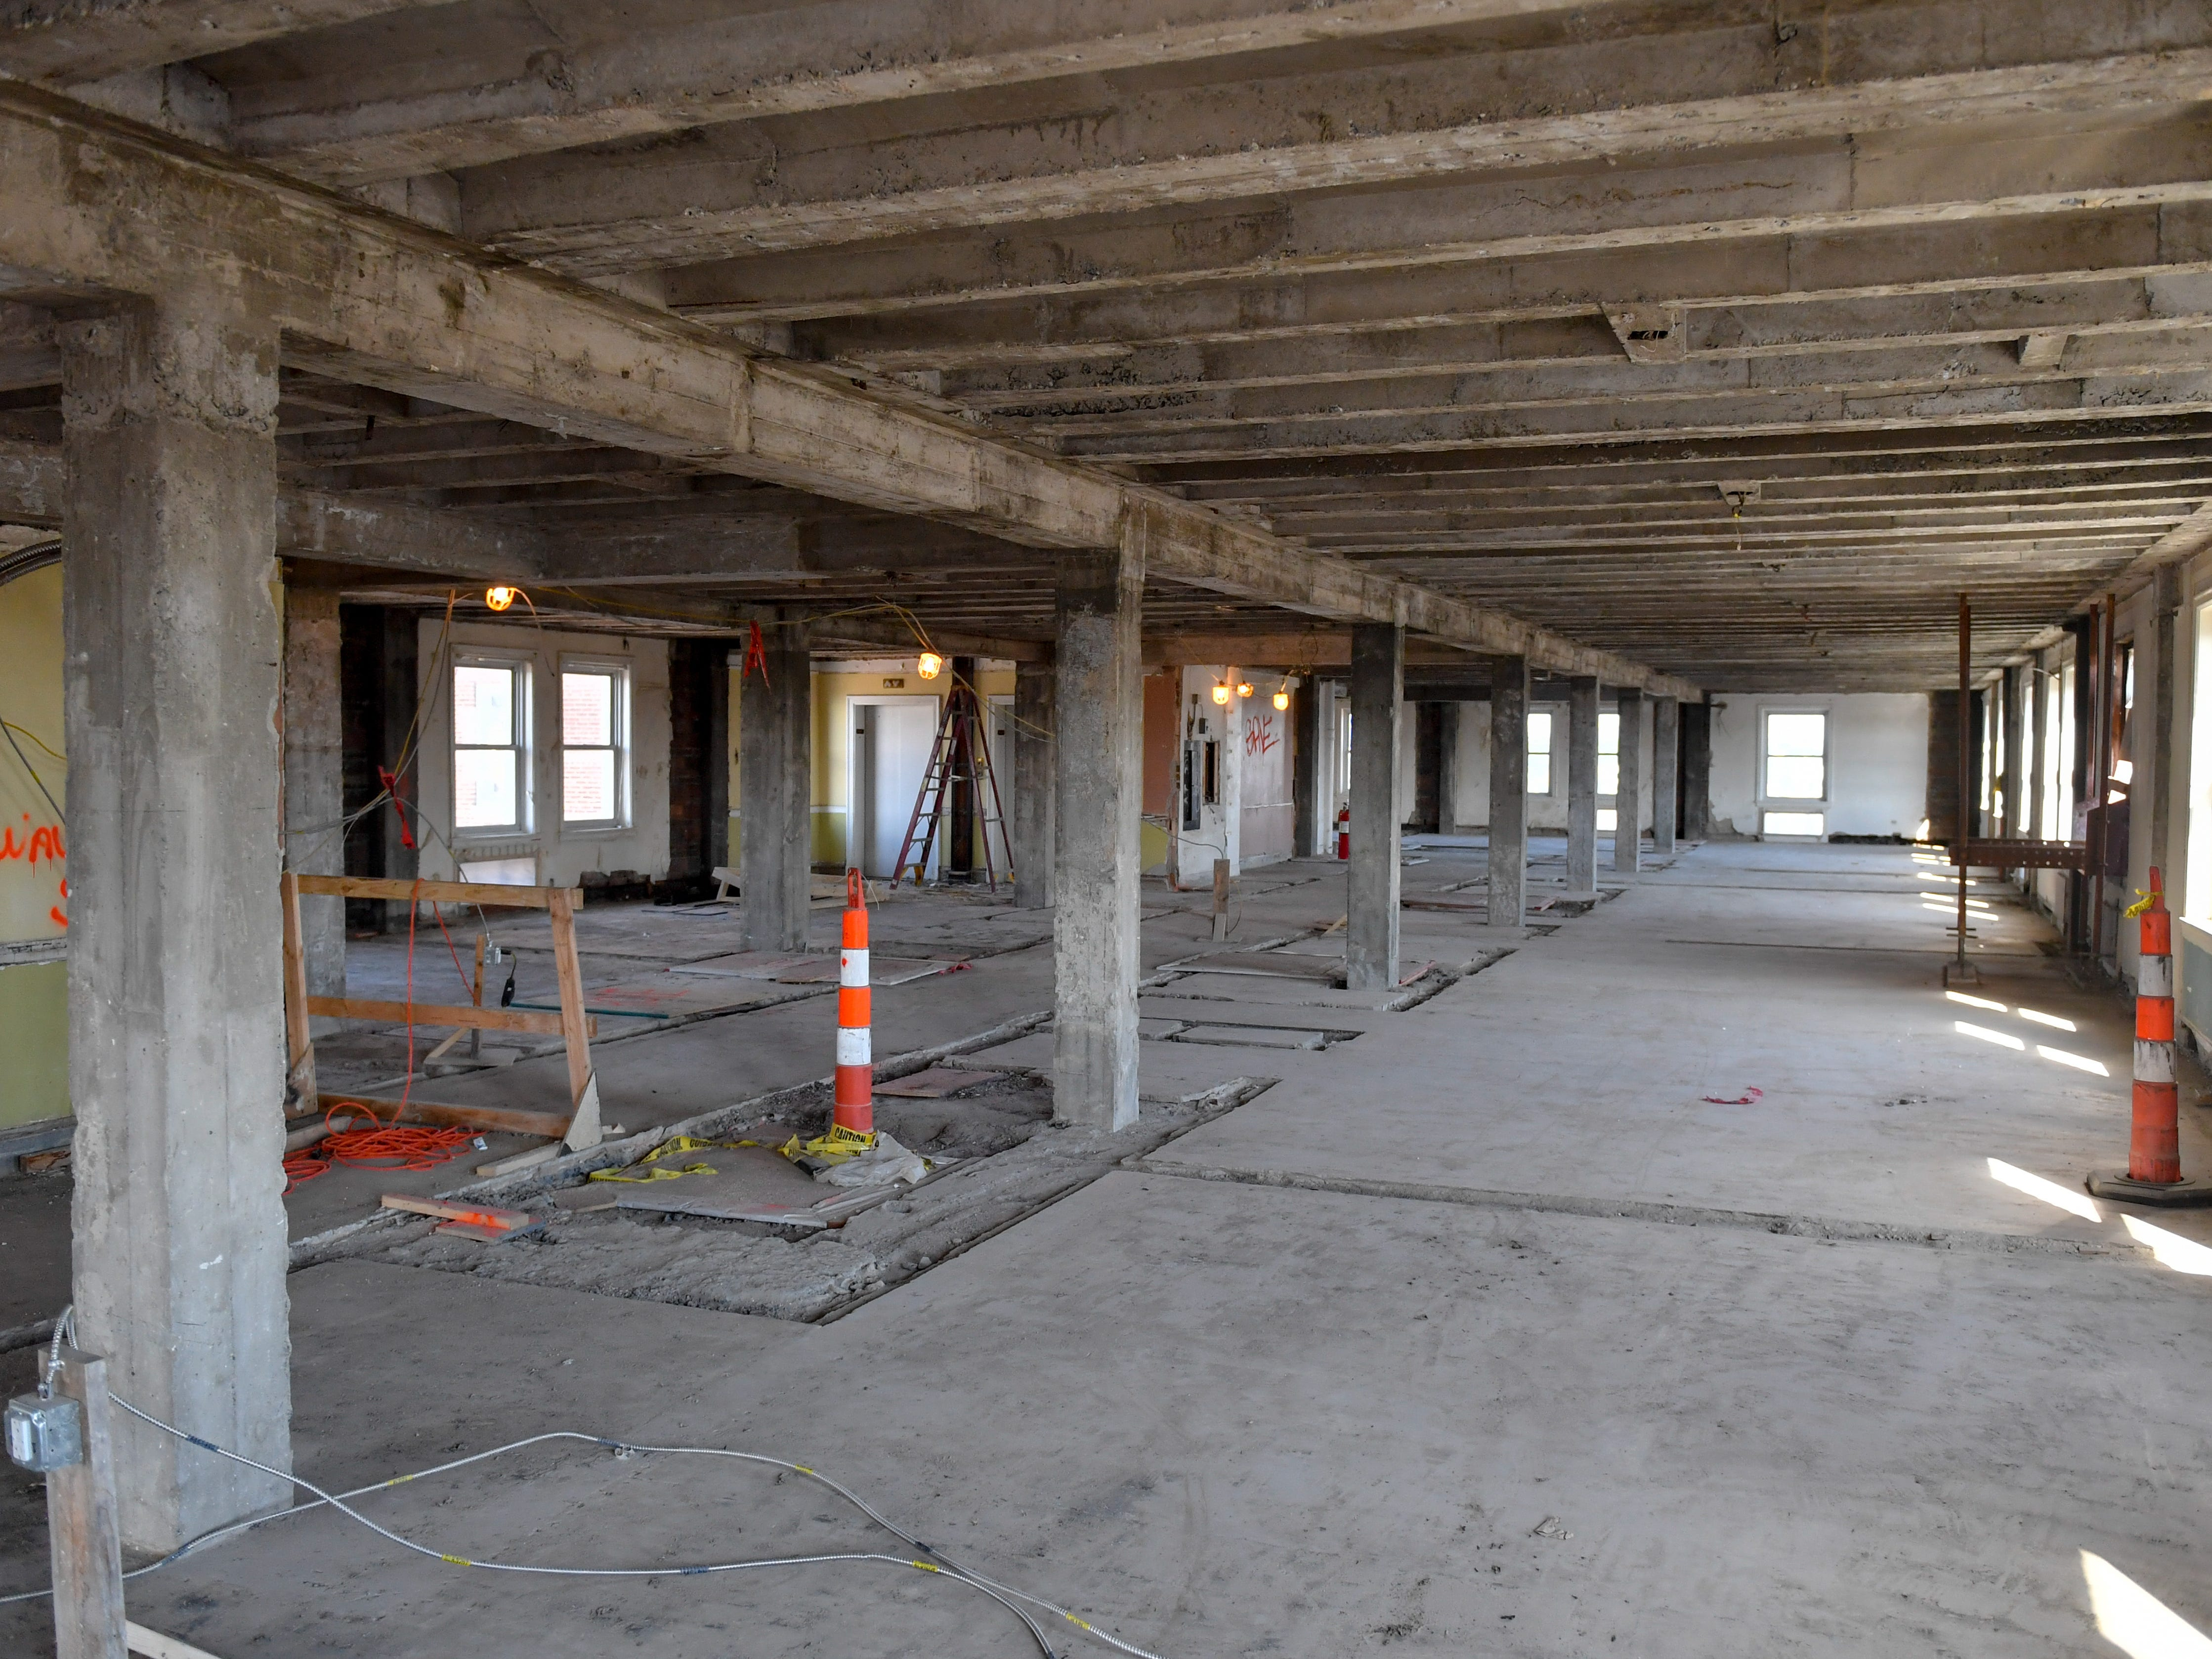 Construction workers come to the eight floor daily to continue taking apart the level at the Yorktowne Hotel on October 4, 2018.